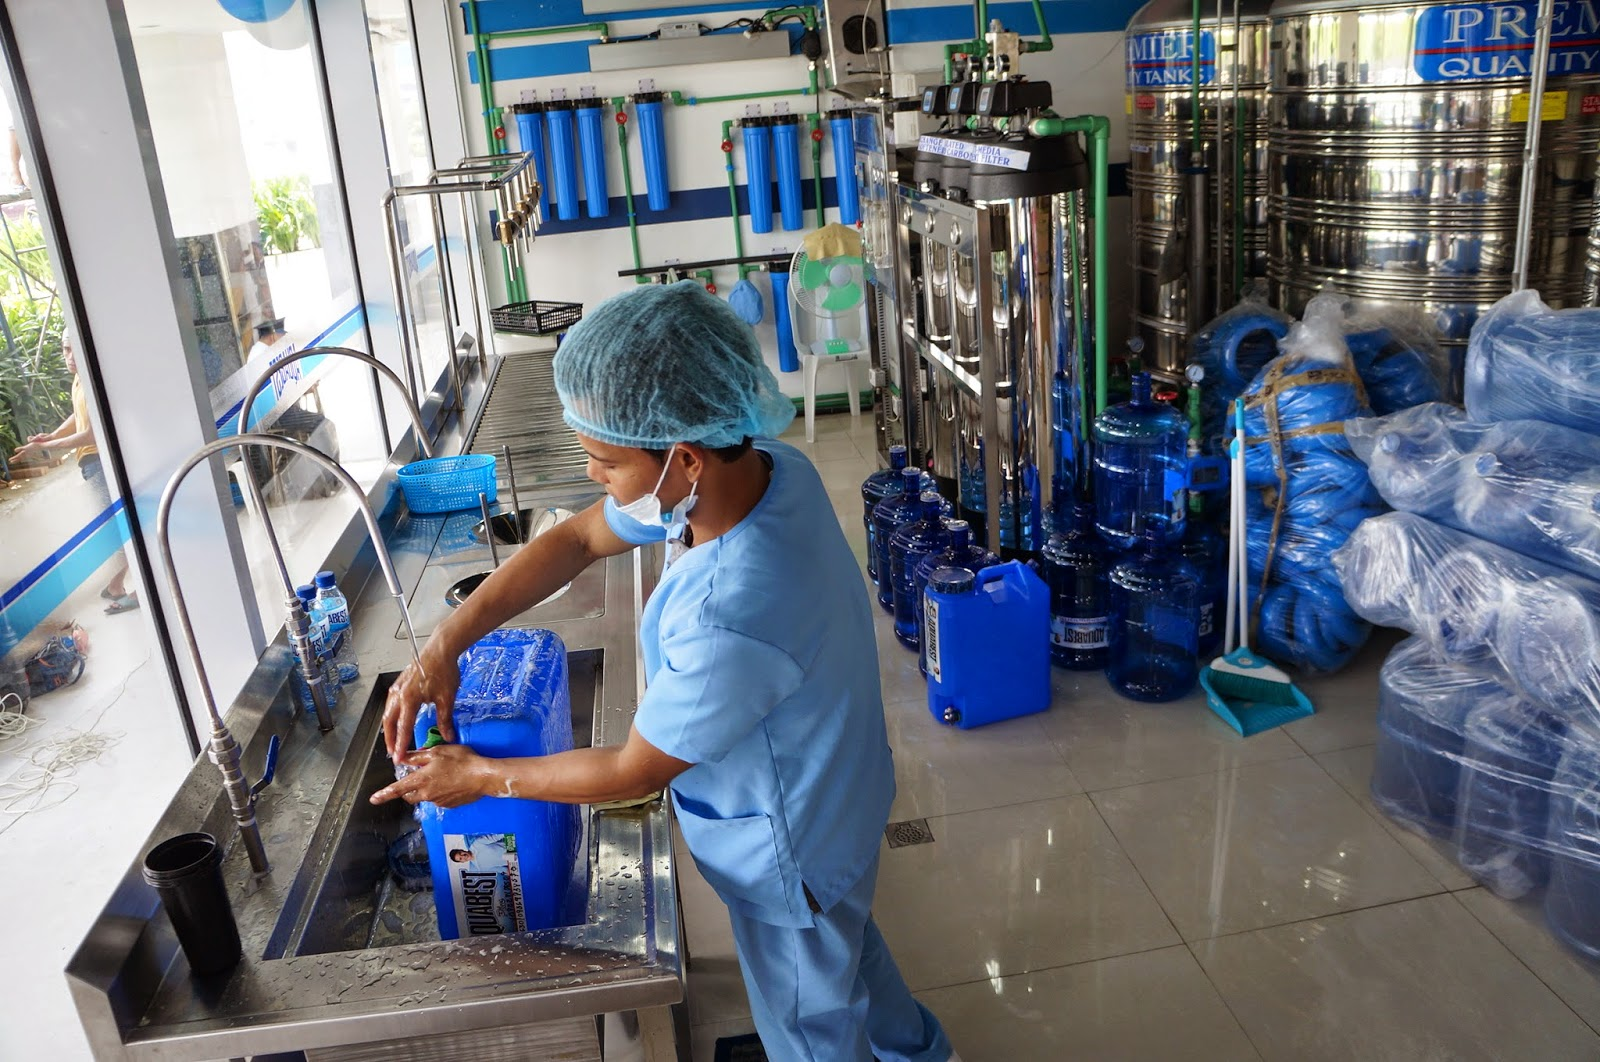 A water refilling station is a profitable business for any OFW. [Image Credit: Wazzup Pilipinas]